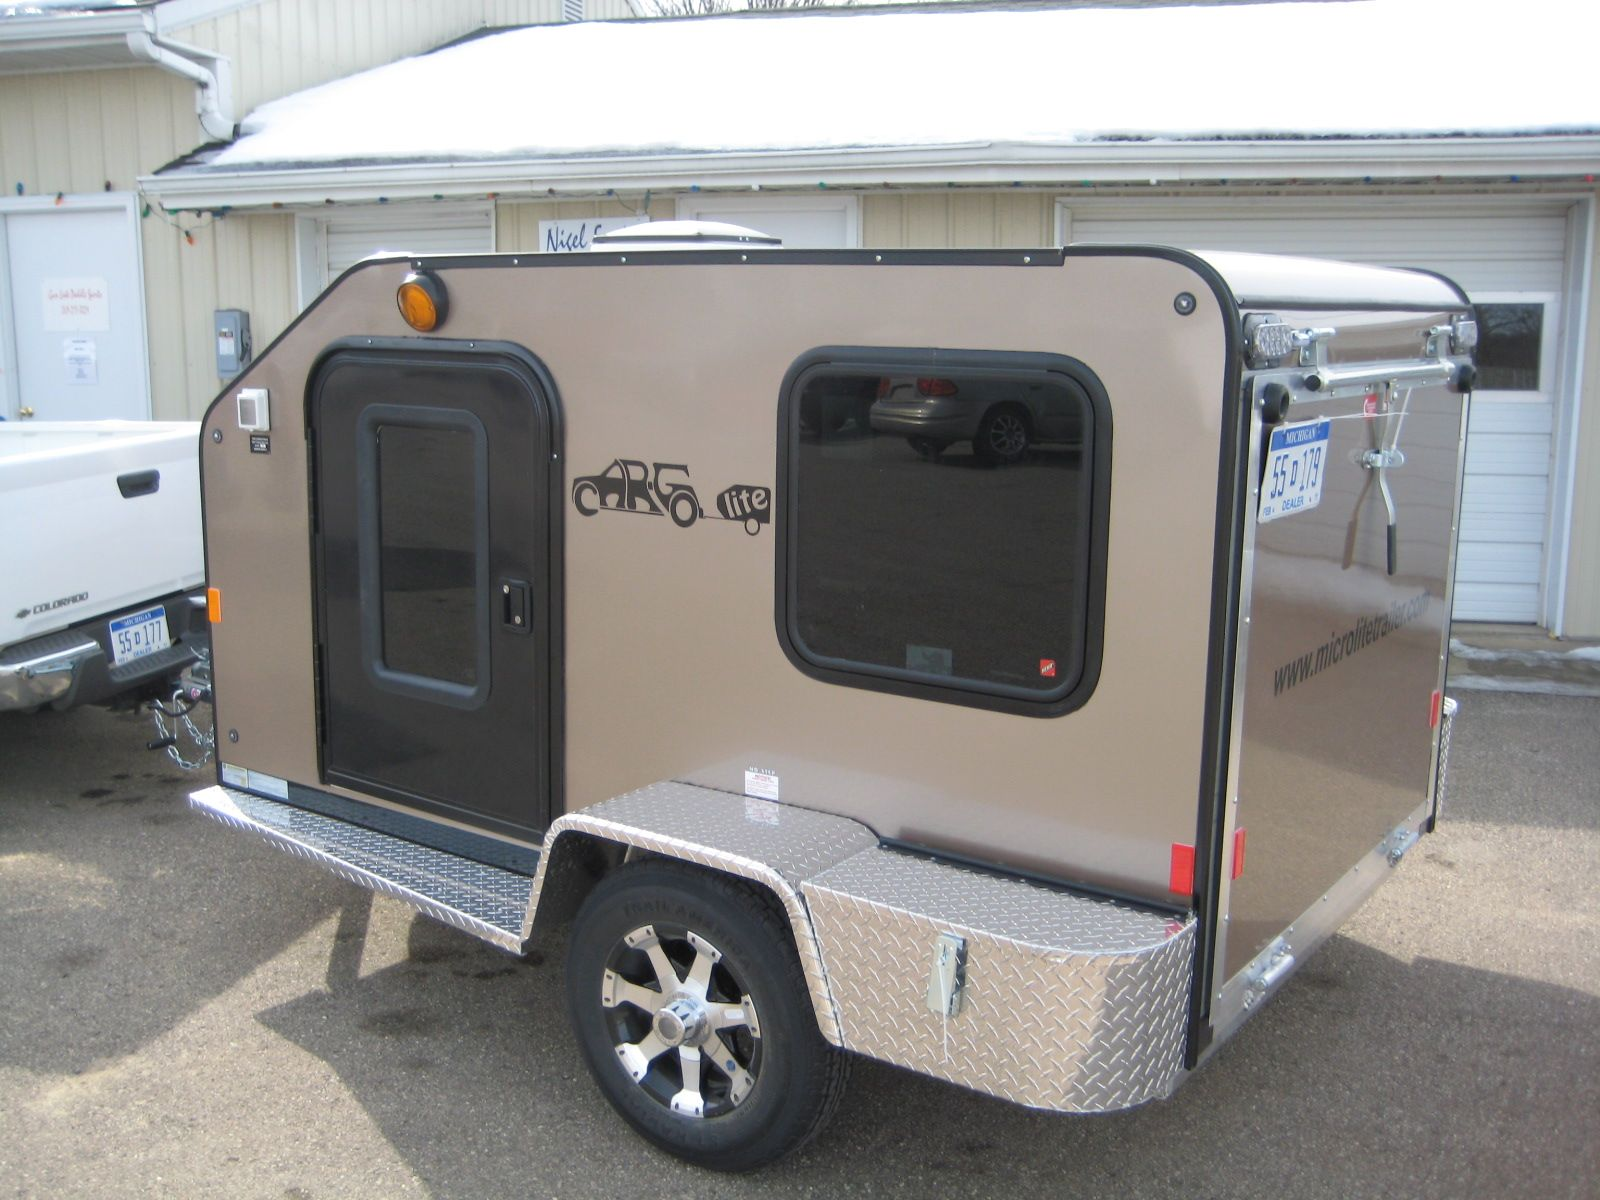 microlite trailers camper trailers pinterest wohnwagen camping anh nger und wohnmobil. Black Bedroom Furniture Sets. Home Design Ideas